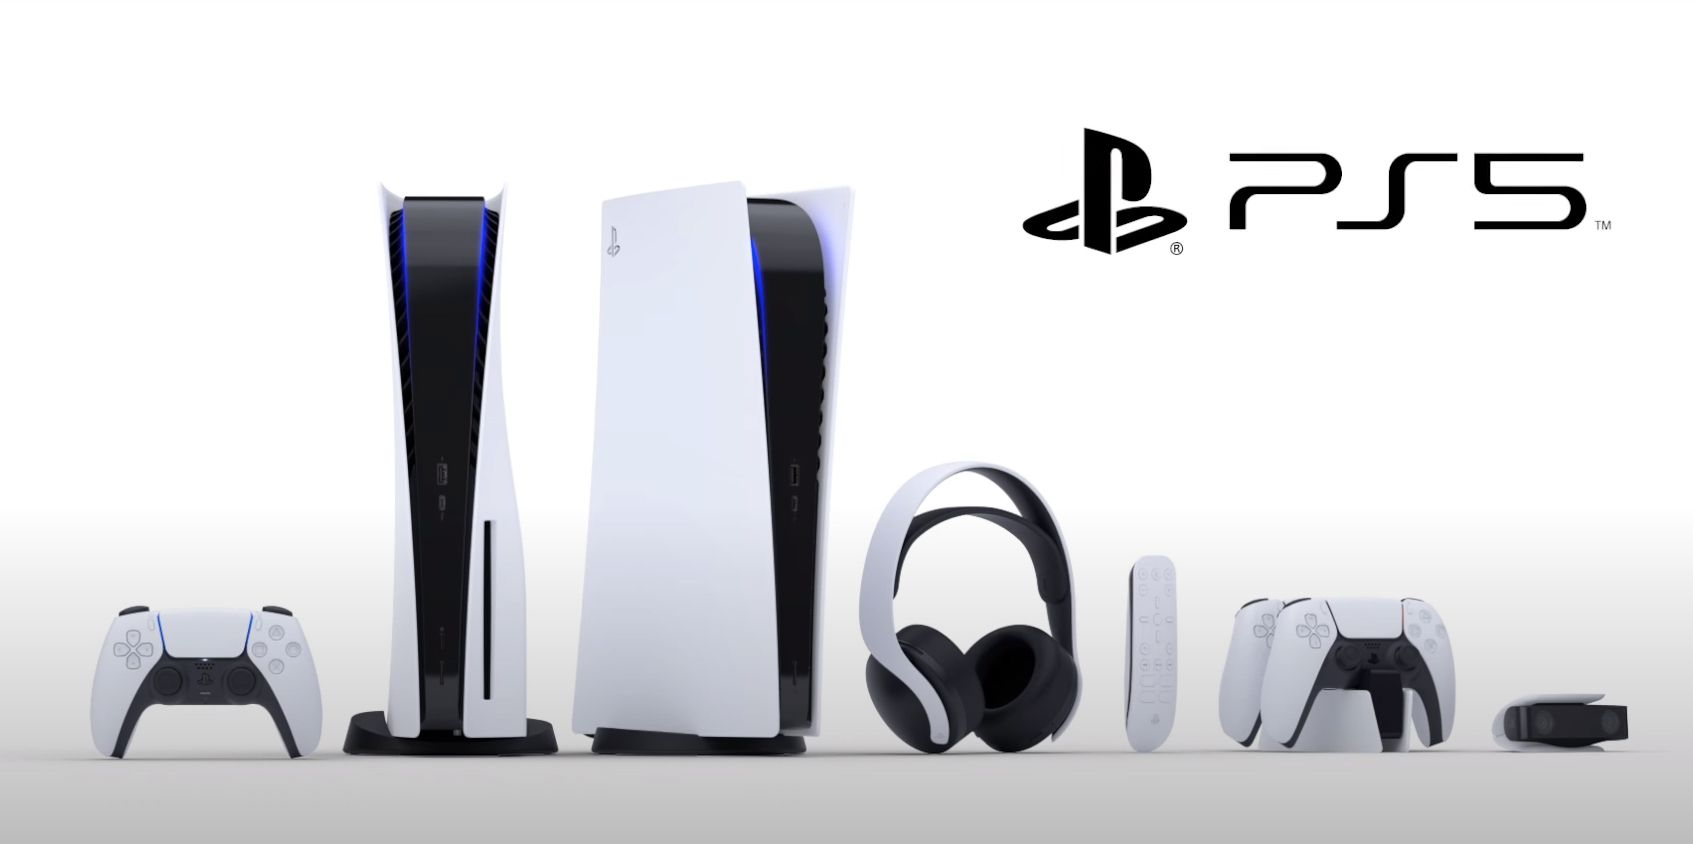 First look at the new PlayStation 5 console!